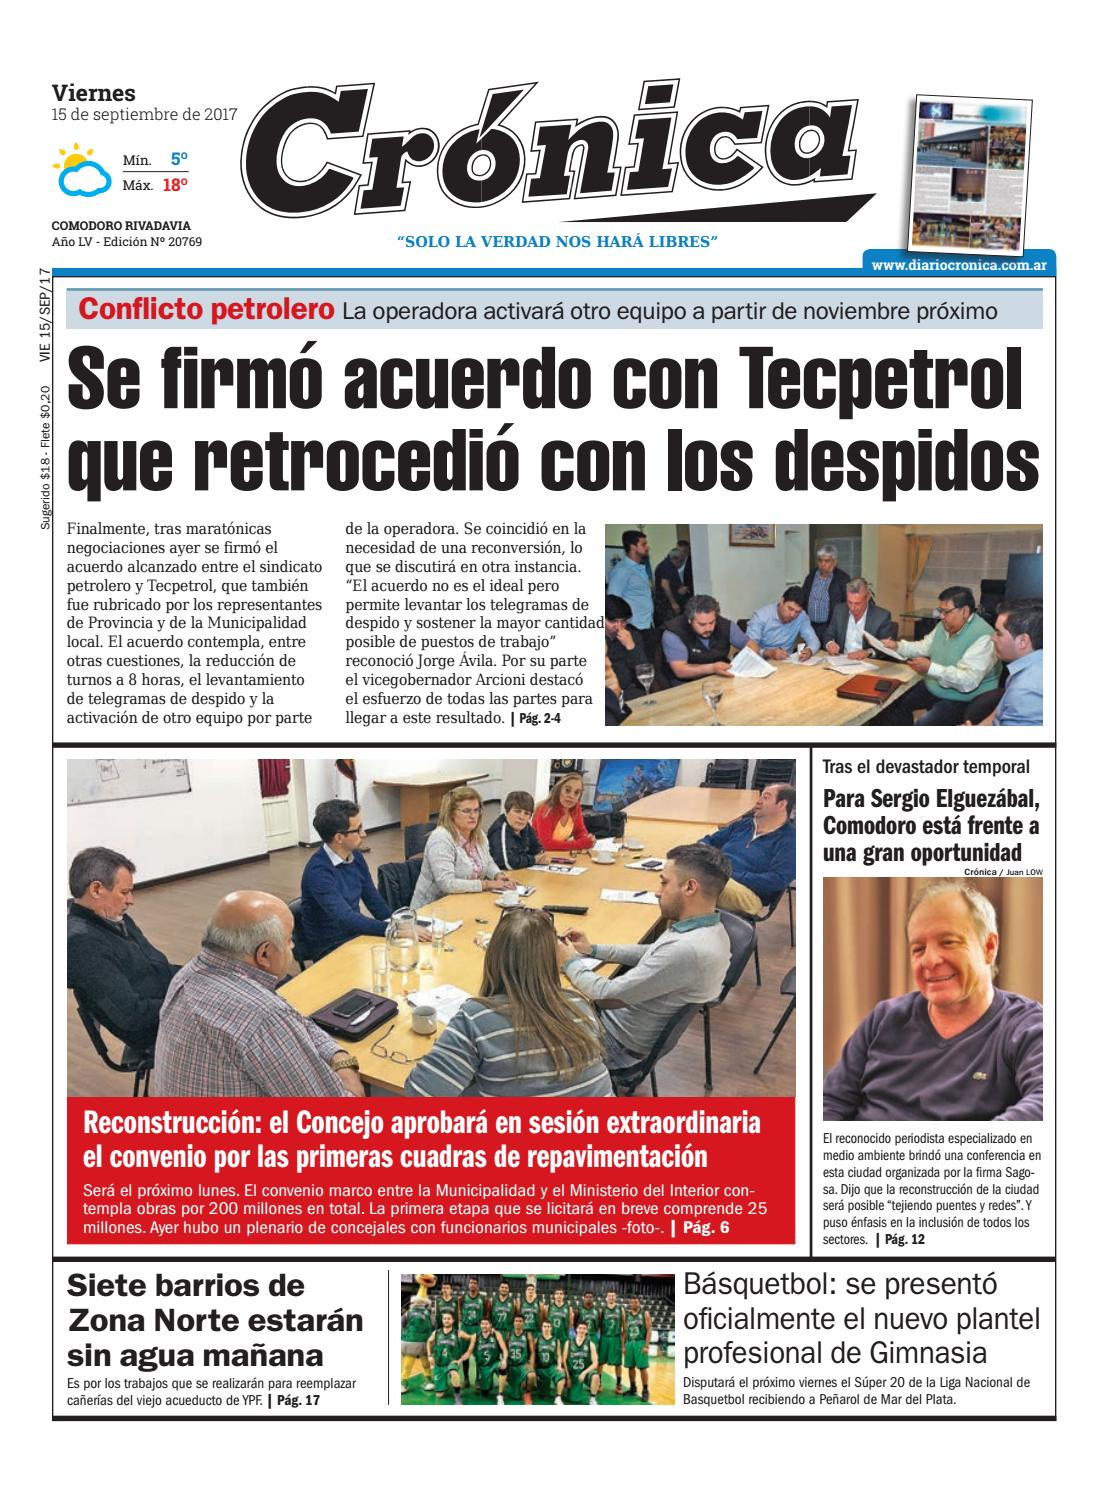 Ea740a6916cad328c260f396bee29551 by Diario Crónica - issuu